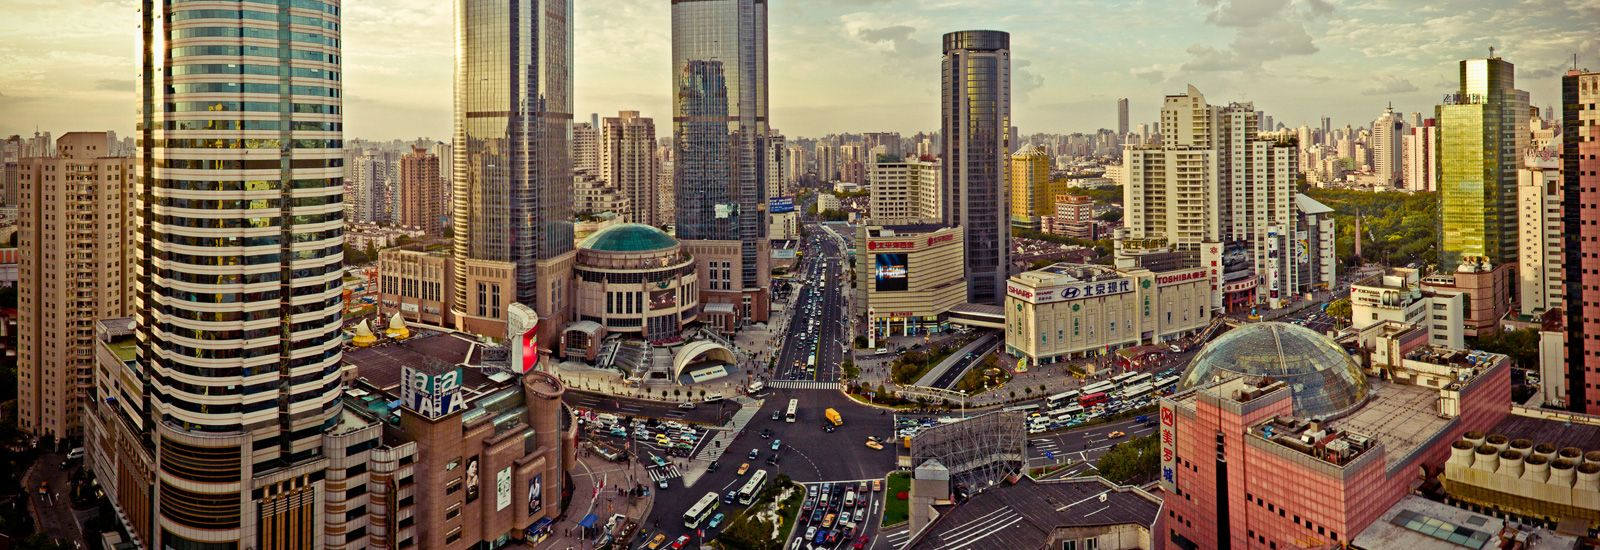 Elevated view of the central shopping district of Shanghai